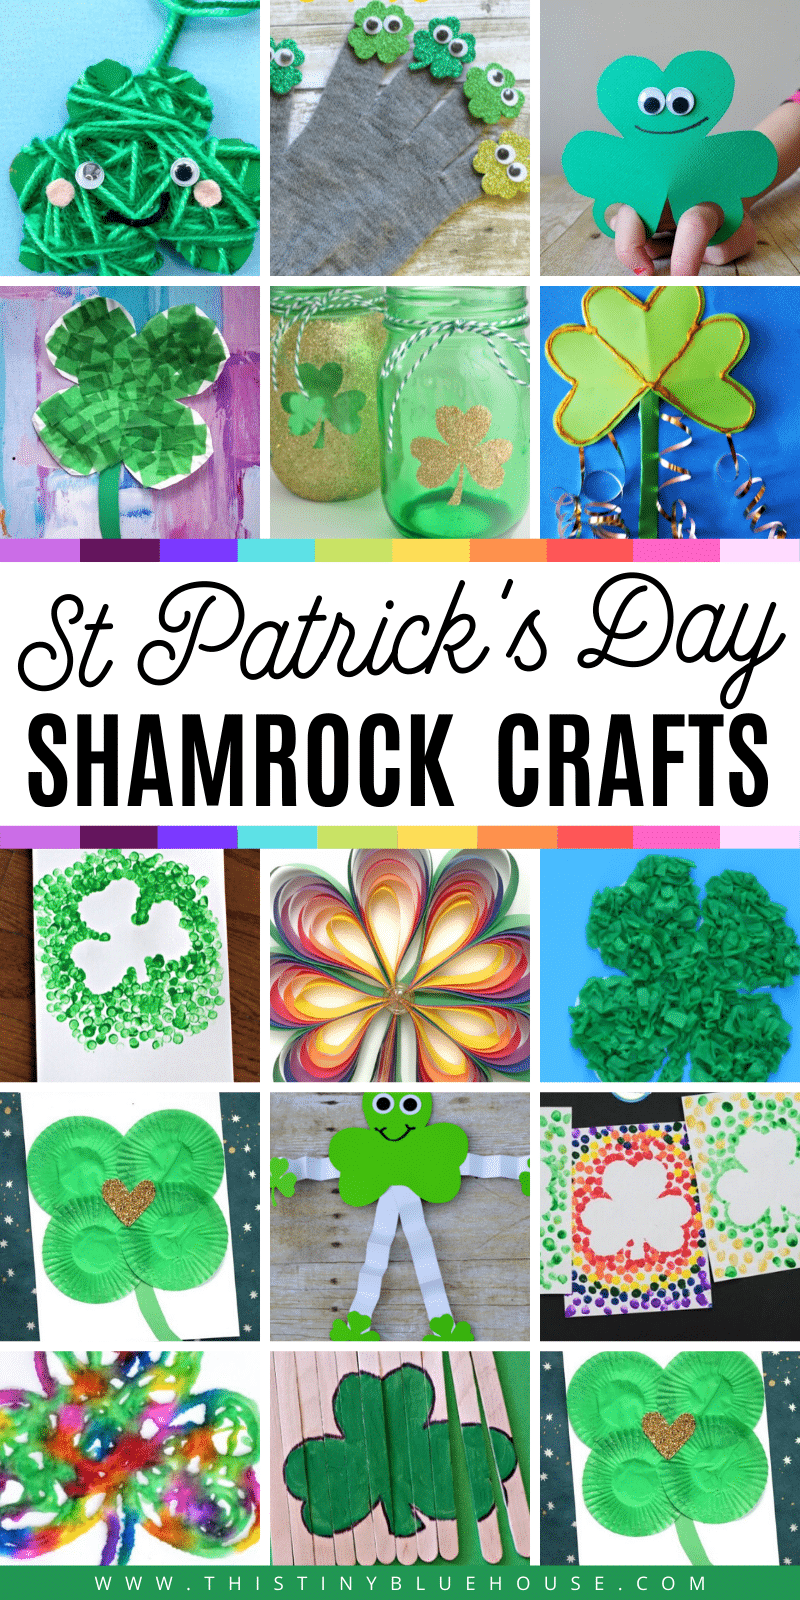 Here are 40 best shamrock crafts that kids love making for St.Patrick's Day. These 40 easy preschool and toddler shamrock crafts are great for even the smallest kids. #stpatricksdaycrafts #stpatricksdaycraftsforkids #craftsforkids #stpaddysdaycraftsforkids #shamrockcrafts #shamrockcraftsofrkids #stpatricksdaycraftsforpreschooler